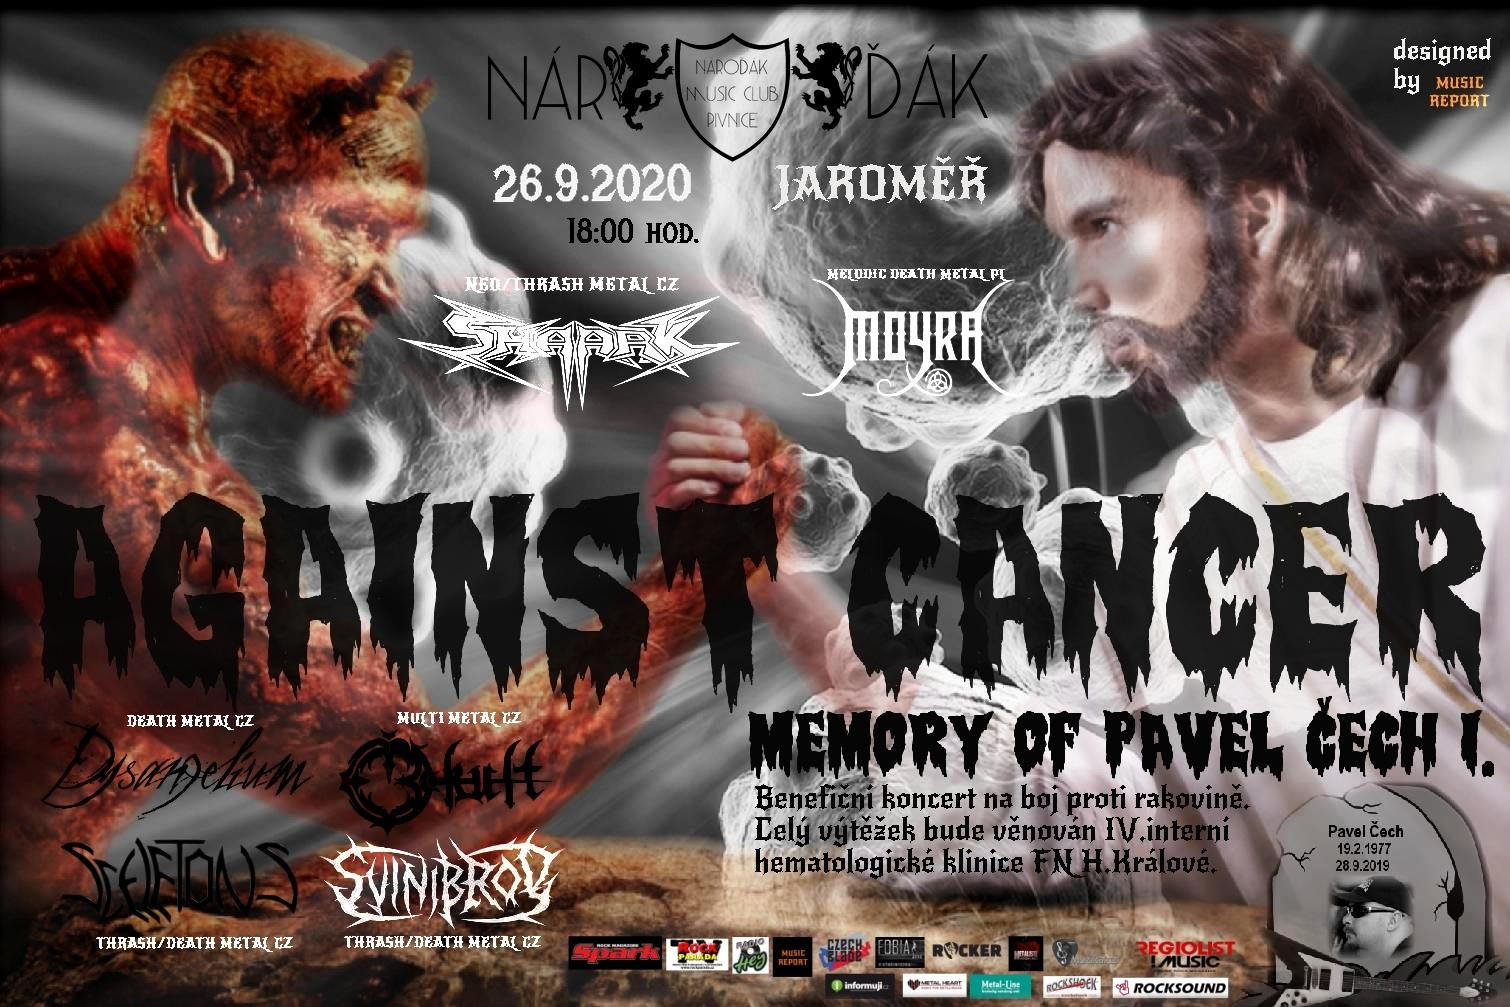 AGAINST CANCER — MEMORY OF PAVEL ČECH vol.1